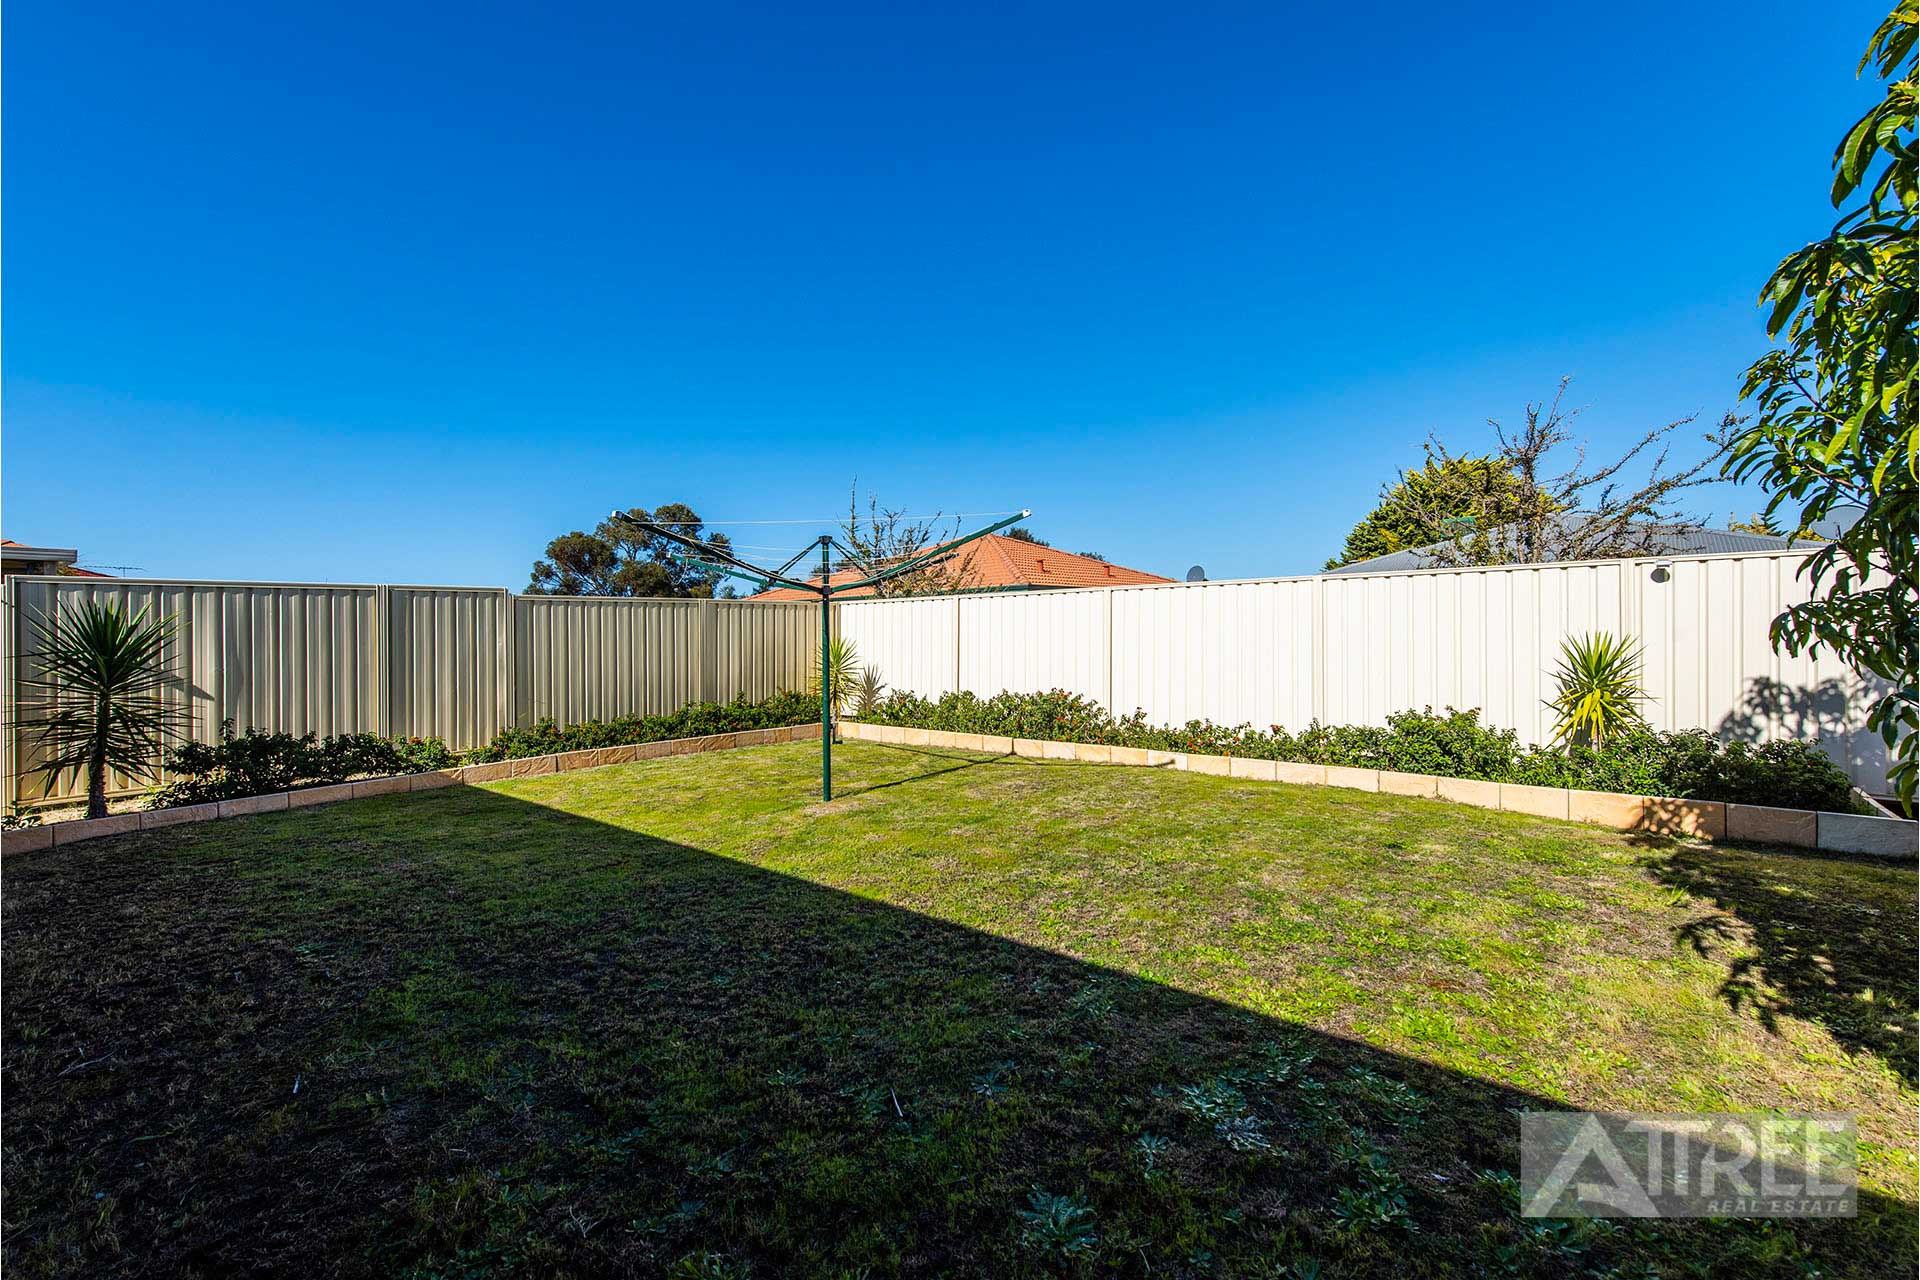 Property for sale in MADDINGTON, 3 Kamber Court : Attree Real Estate